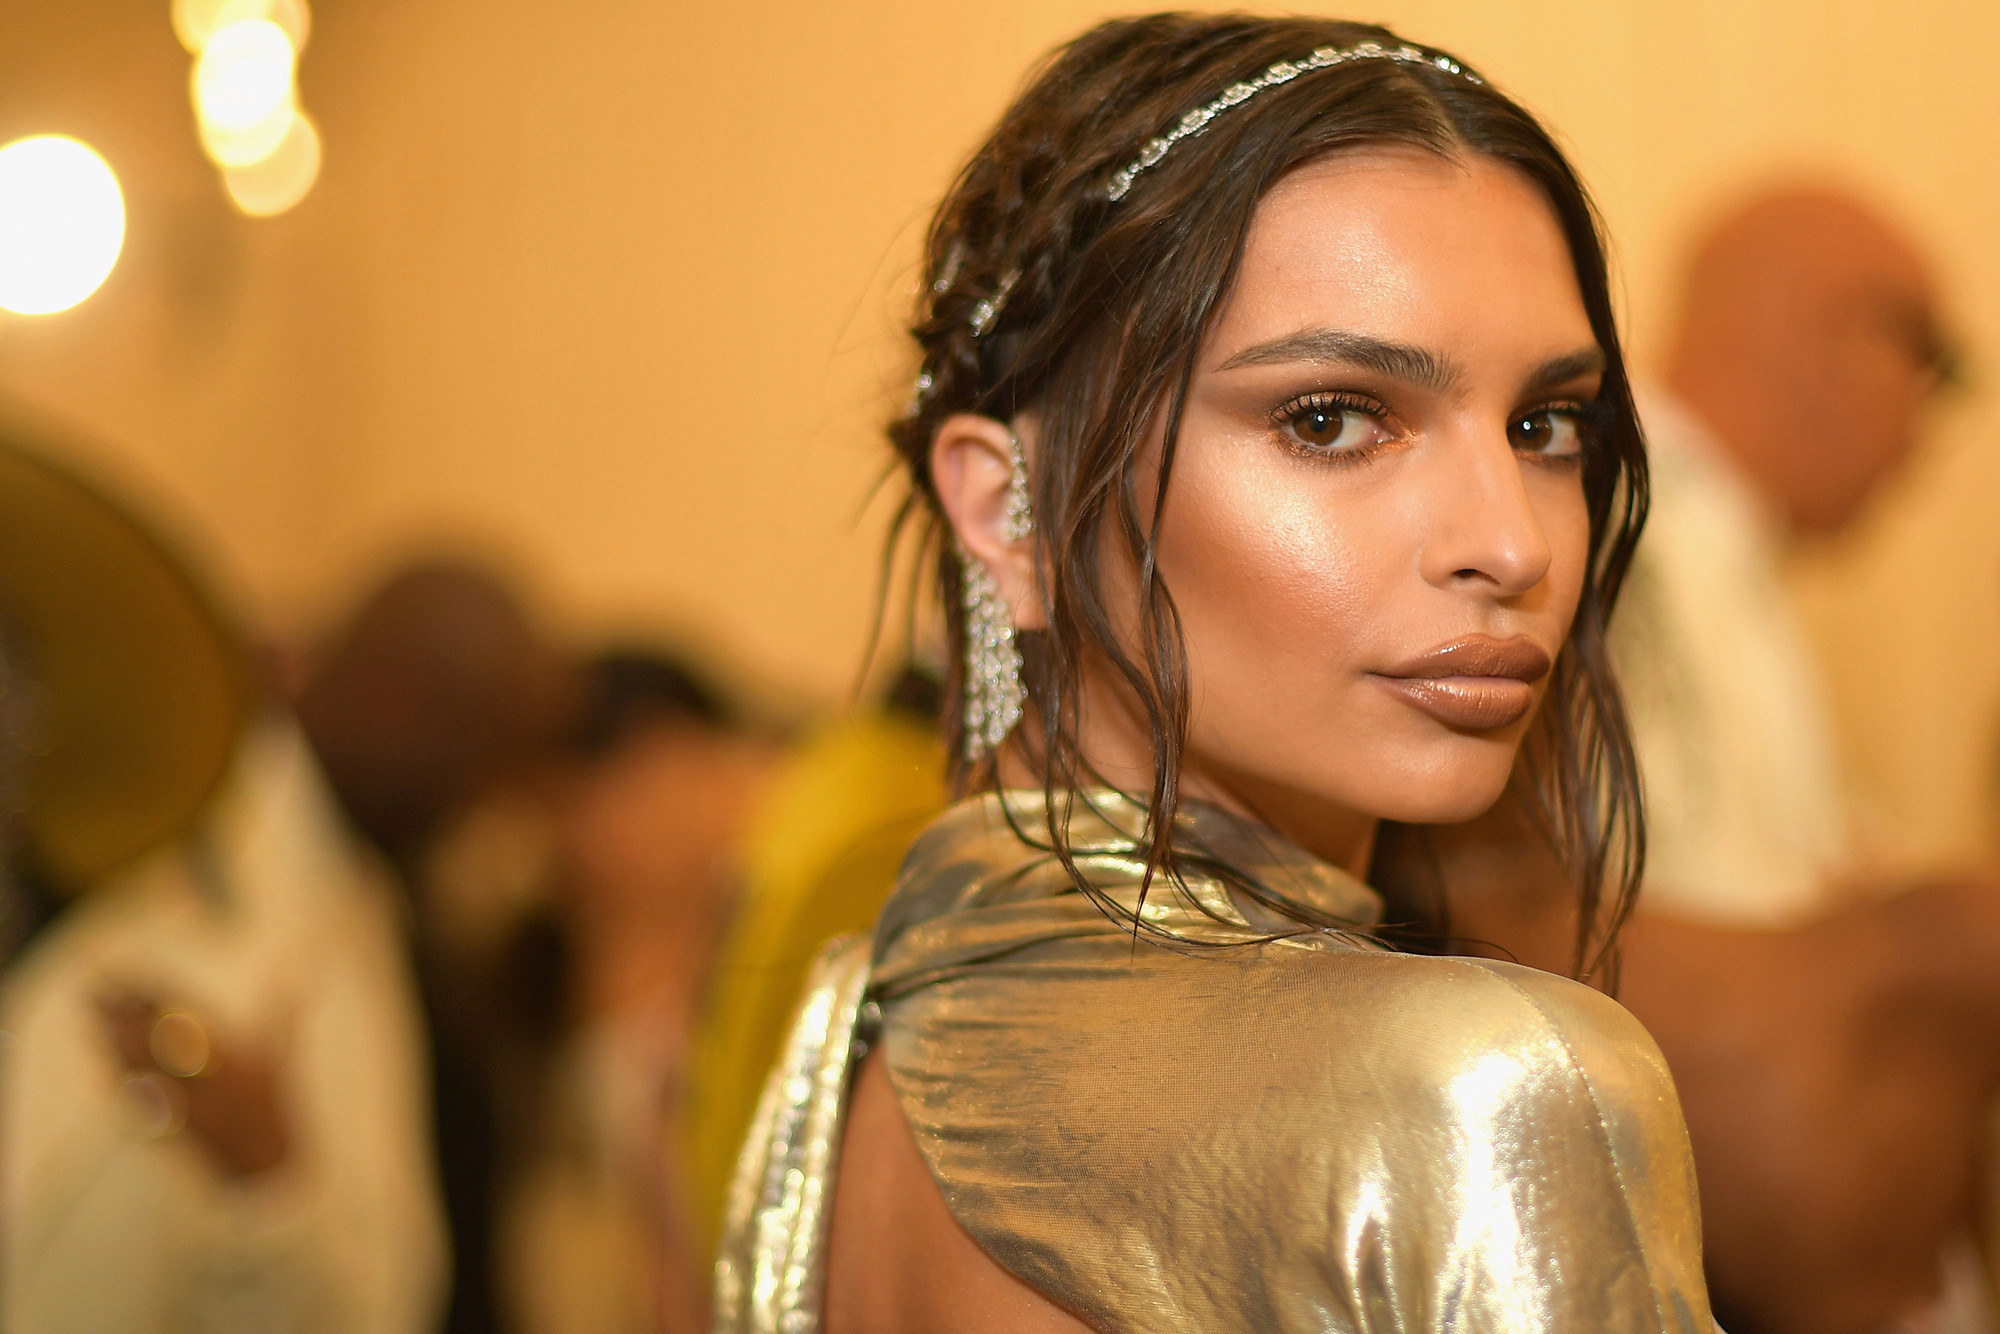 Emily Ratajkowski Beautiful Pics - Emily Ratajkowski Net Worth, Pics, Wallpapers, Career and Biography